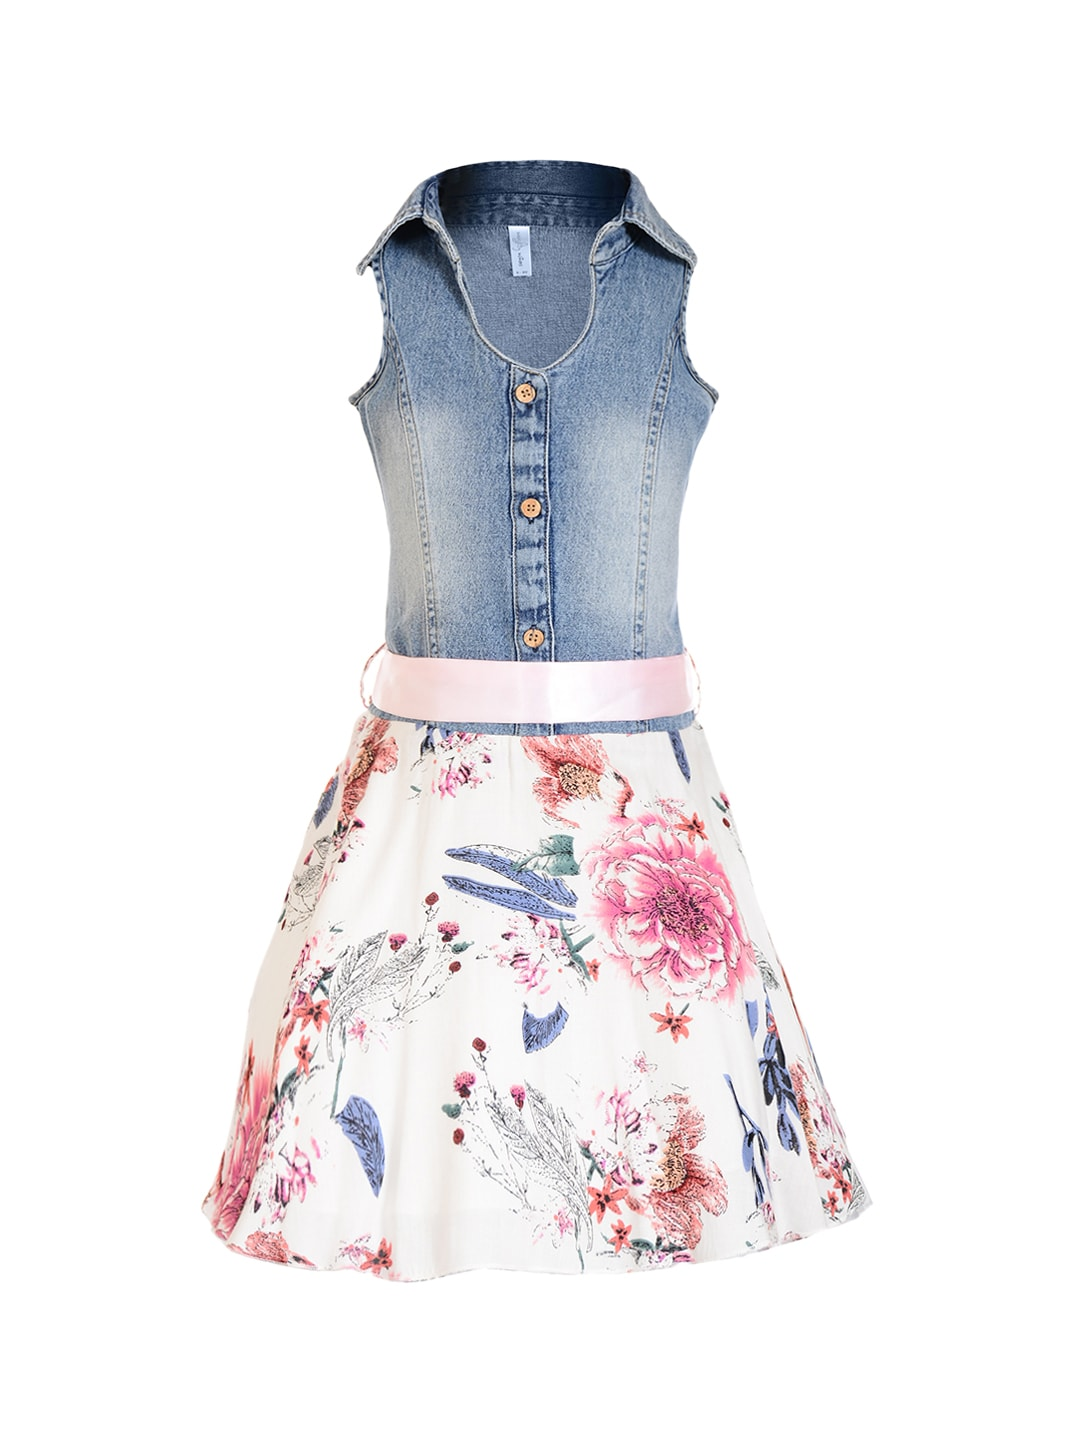 7a23e39f0eeec Girls Clothes - Buy Girls Clothing Online in India